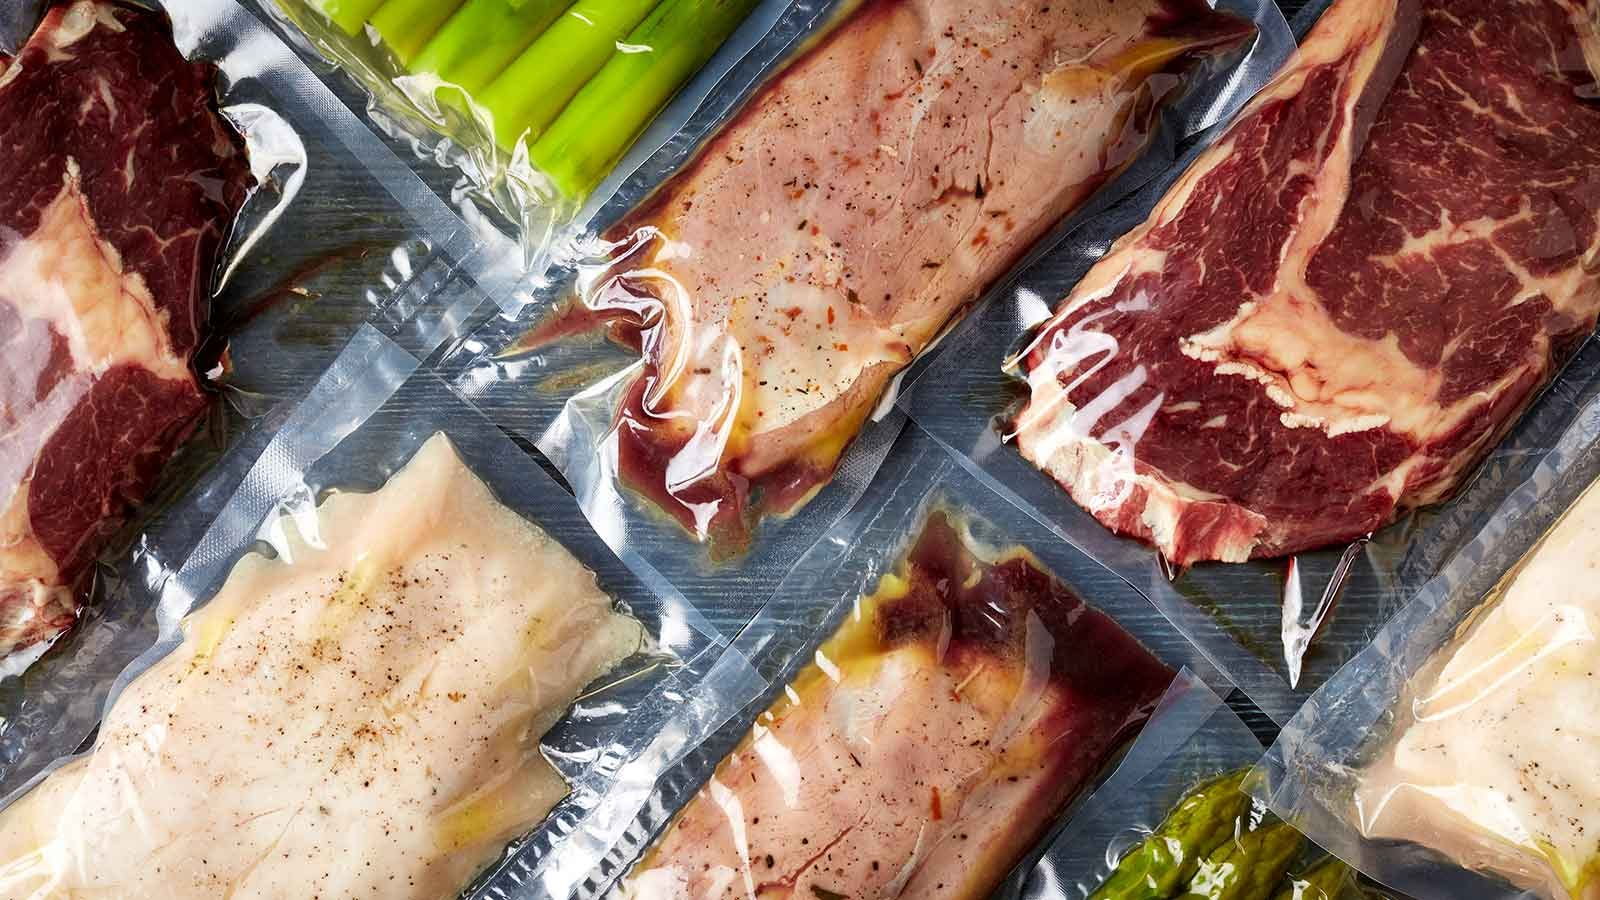 Vacuum sealed meats and vegetables laid out on a counter.